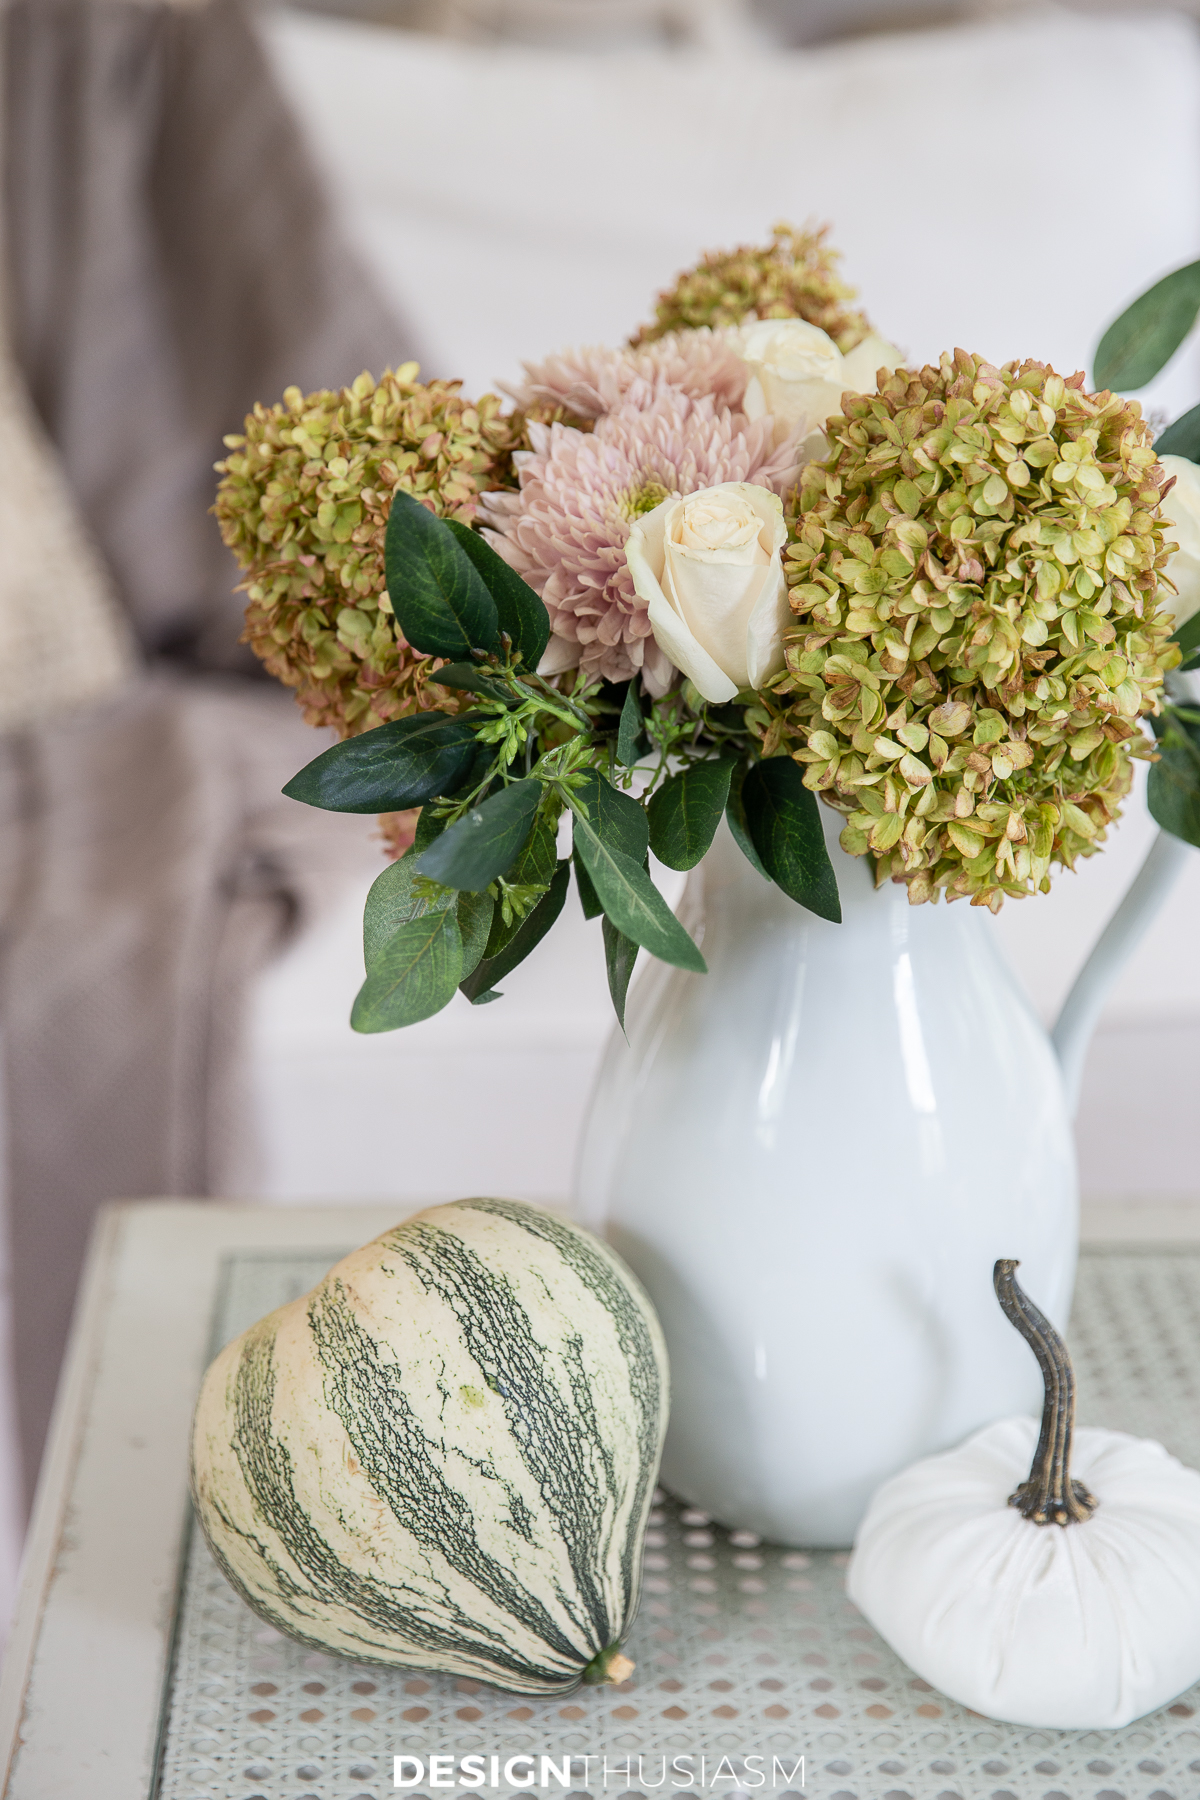 Get It For Less: Where to Find Affordable Fall Decor and How to Style It